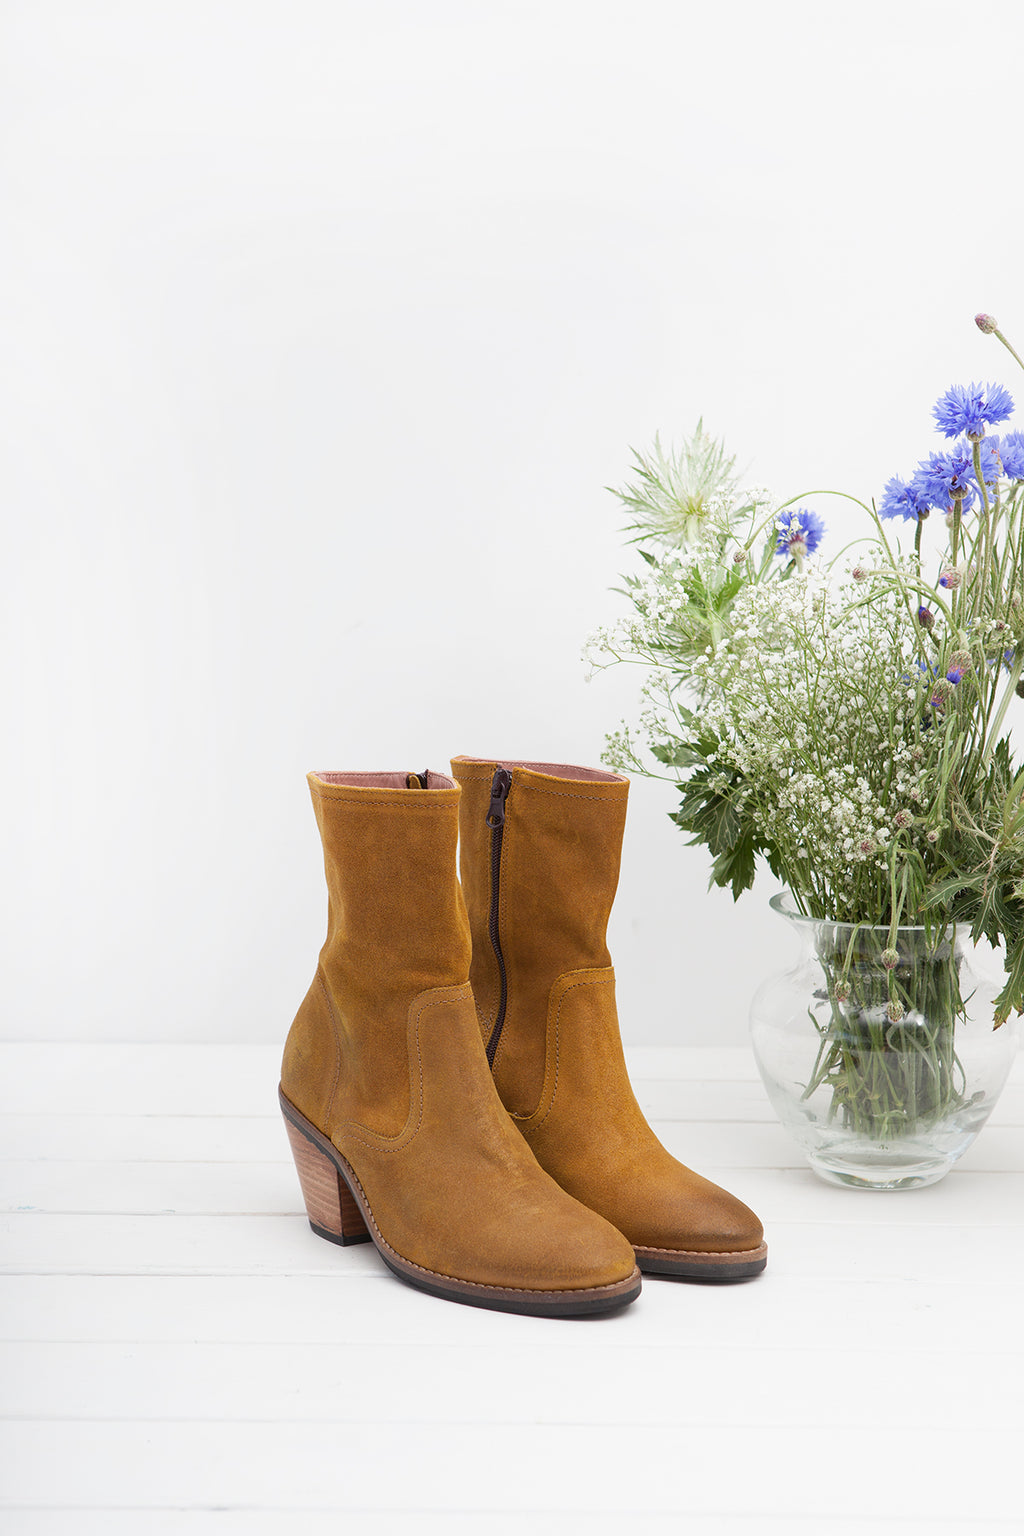 Jane Mustard Zip Up Boot- LAST FEW PAIRS!